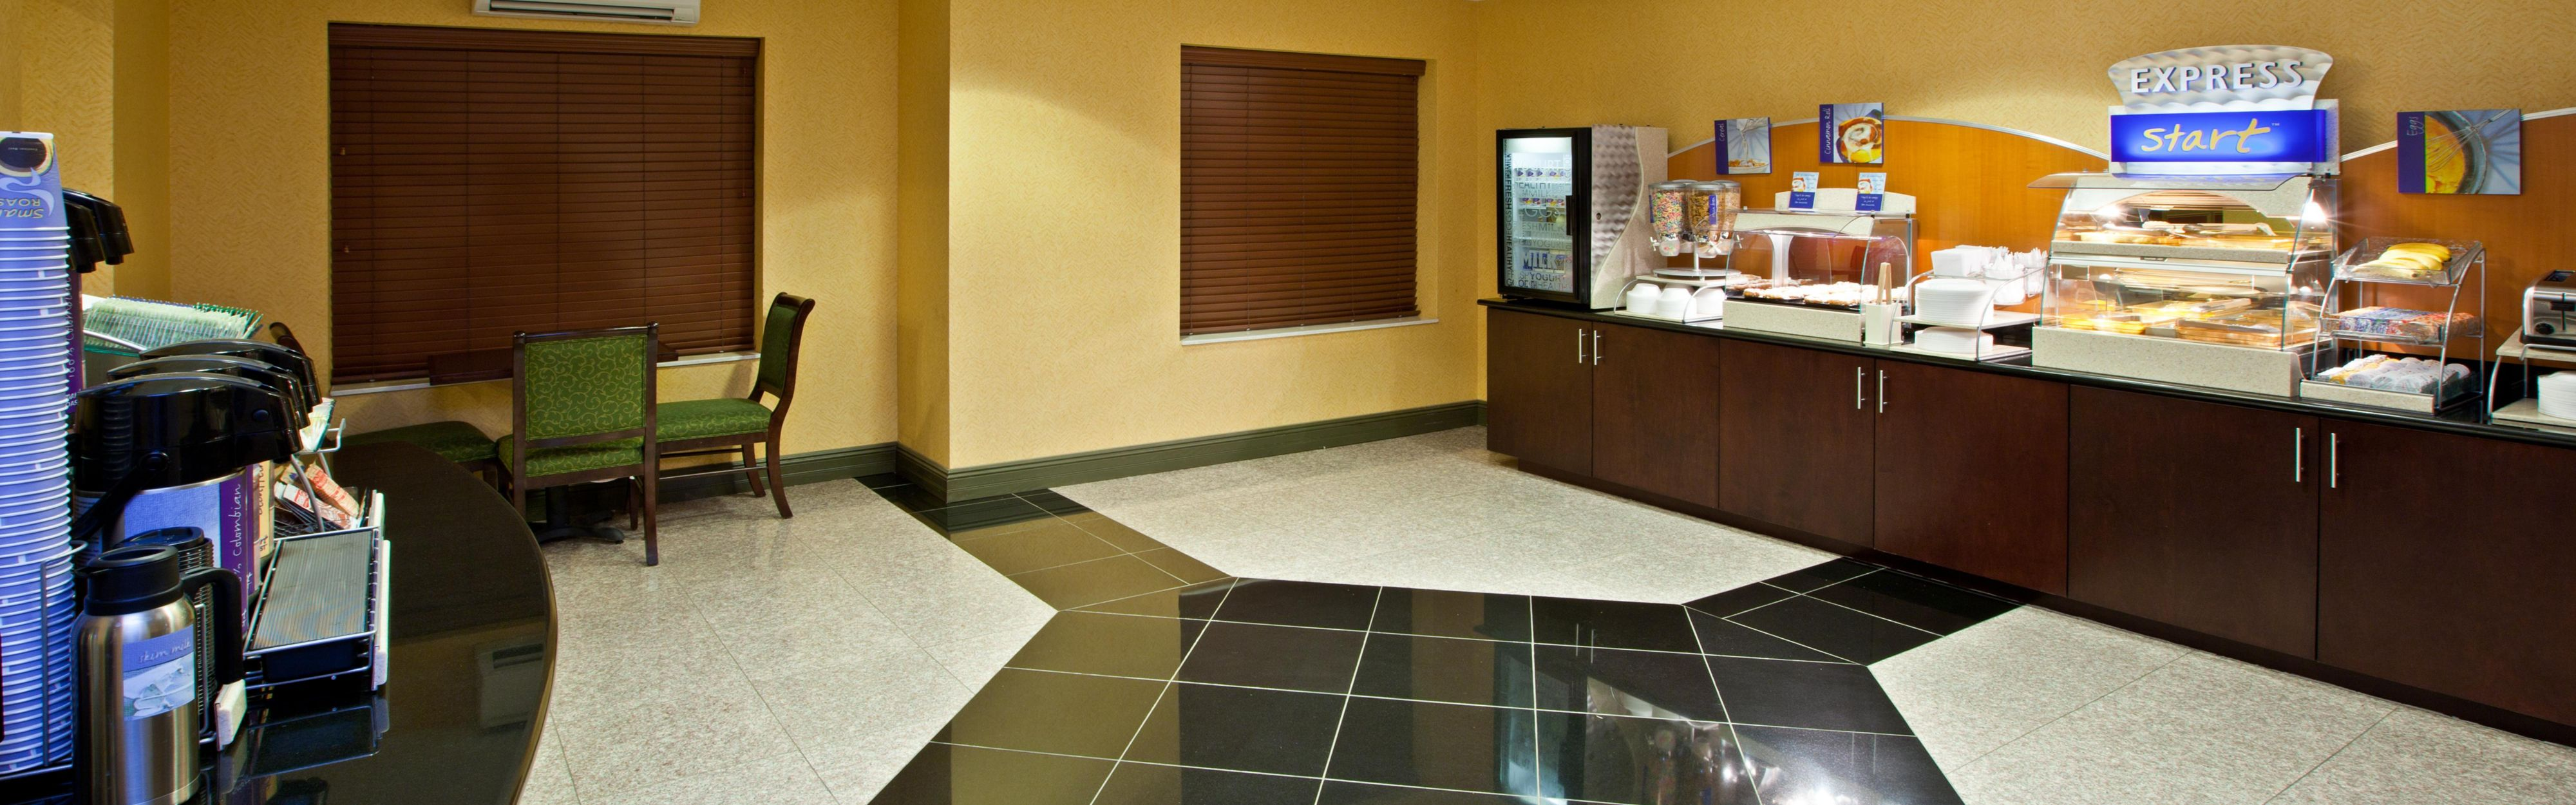 Holiday Inn Express & Suites Indianapolis - East image 3